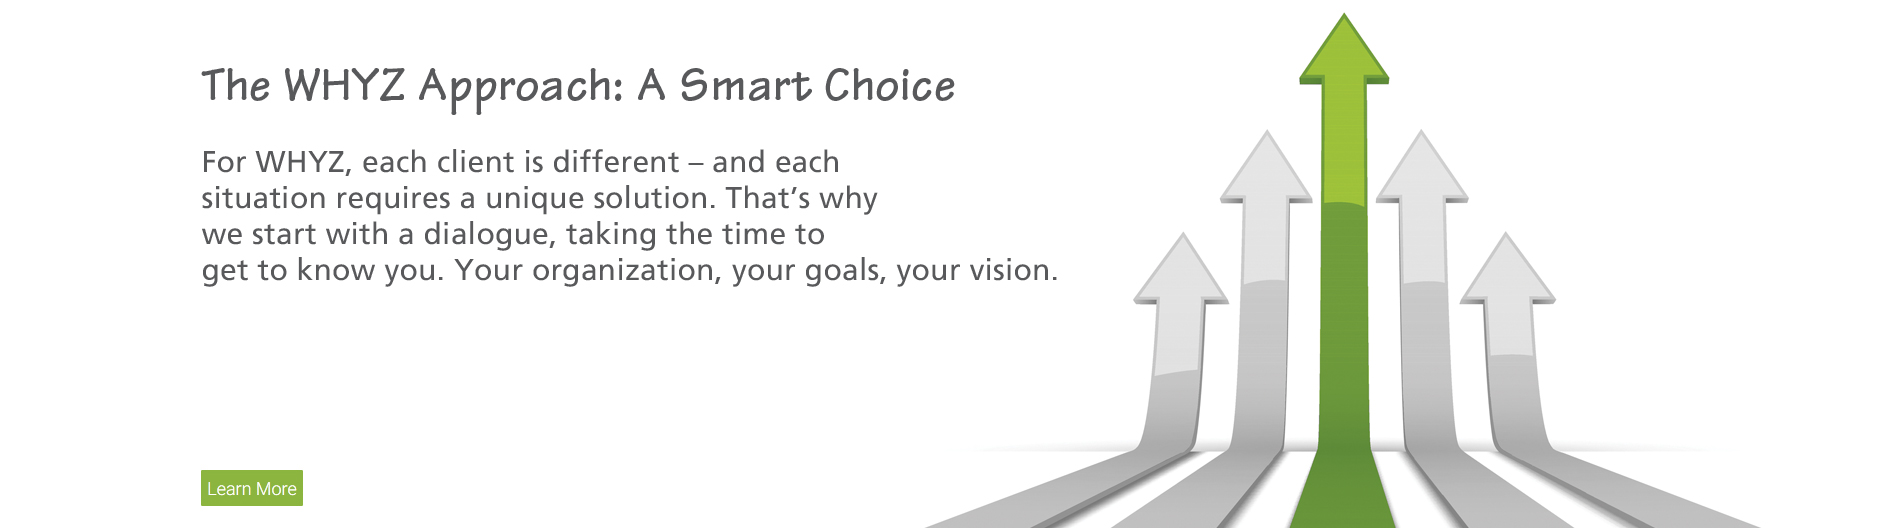 The WHYZ Approach: A Smart Choice